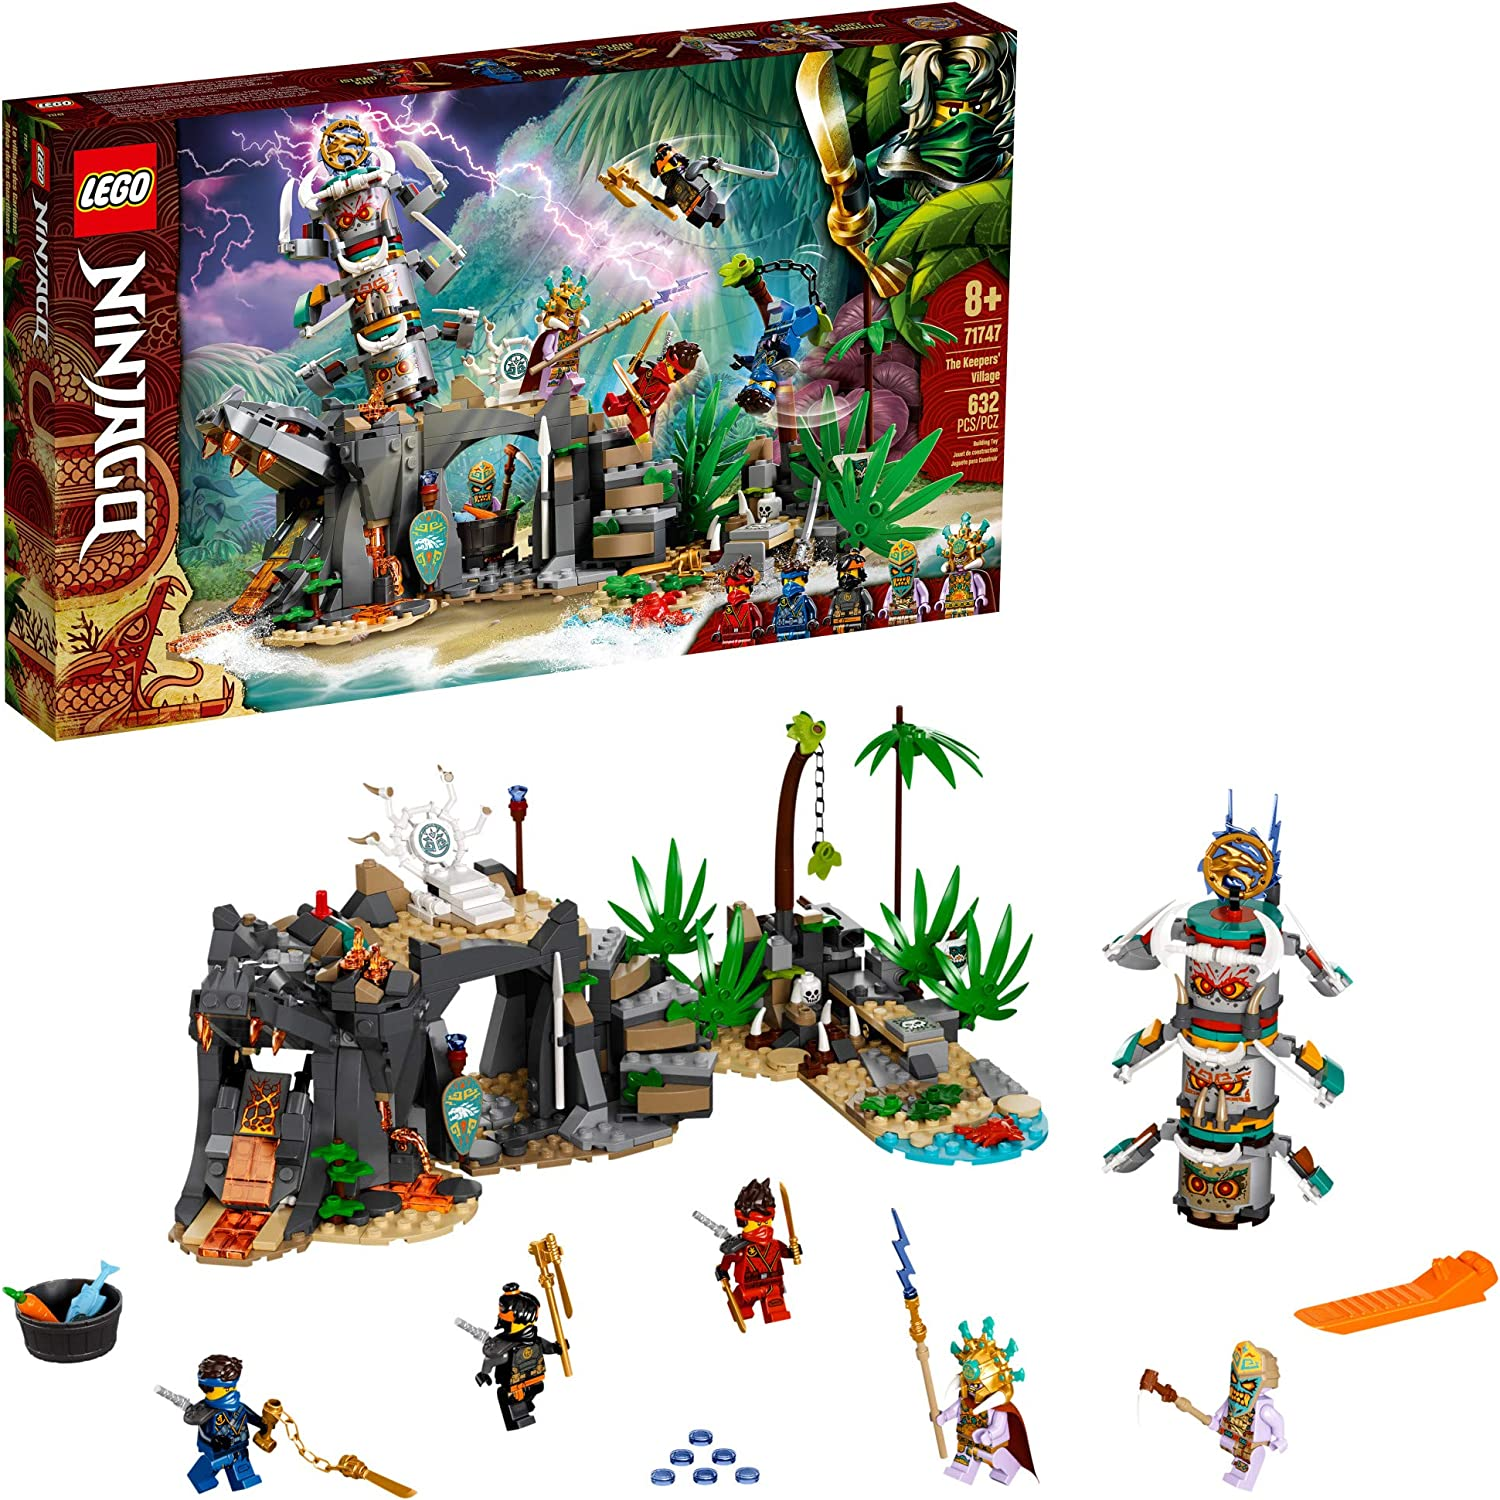 LEGO NINJAGO The Keepers' Village 71747 Building Kit; Ninja Playset Featuring NINJAGO Cole, Jay and Kai; Cool Toys for Kids Aged 8 and Up Who Love Ninjas and Creative Play, New 2021 (632 Pieces)